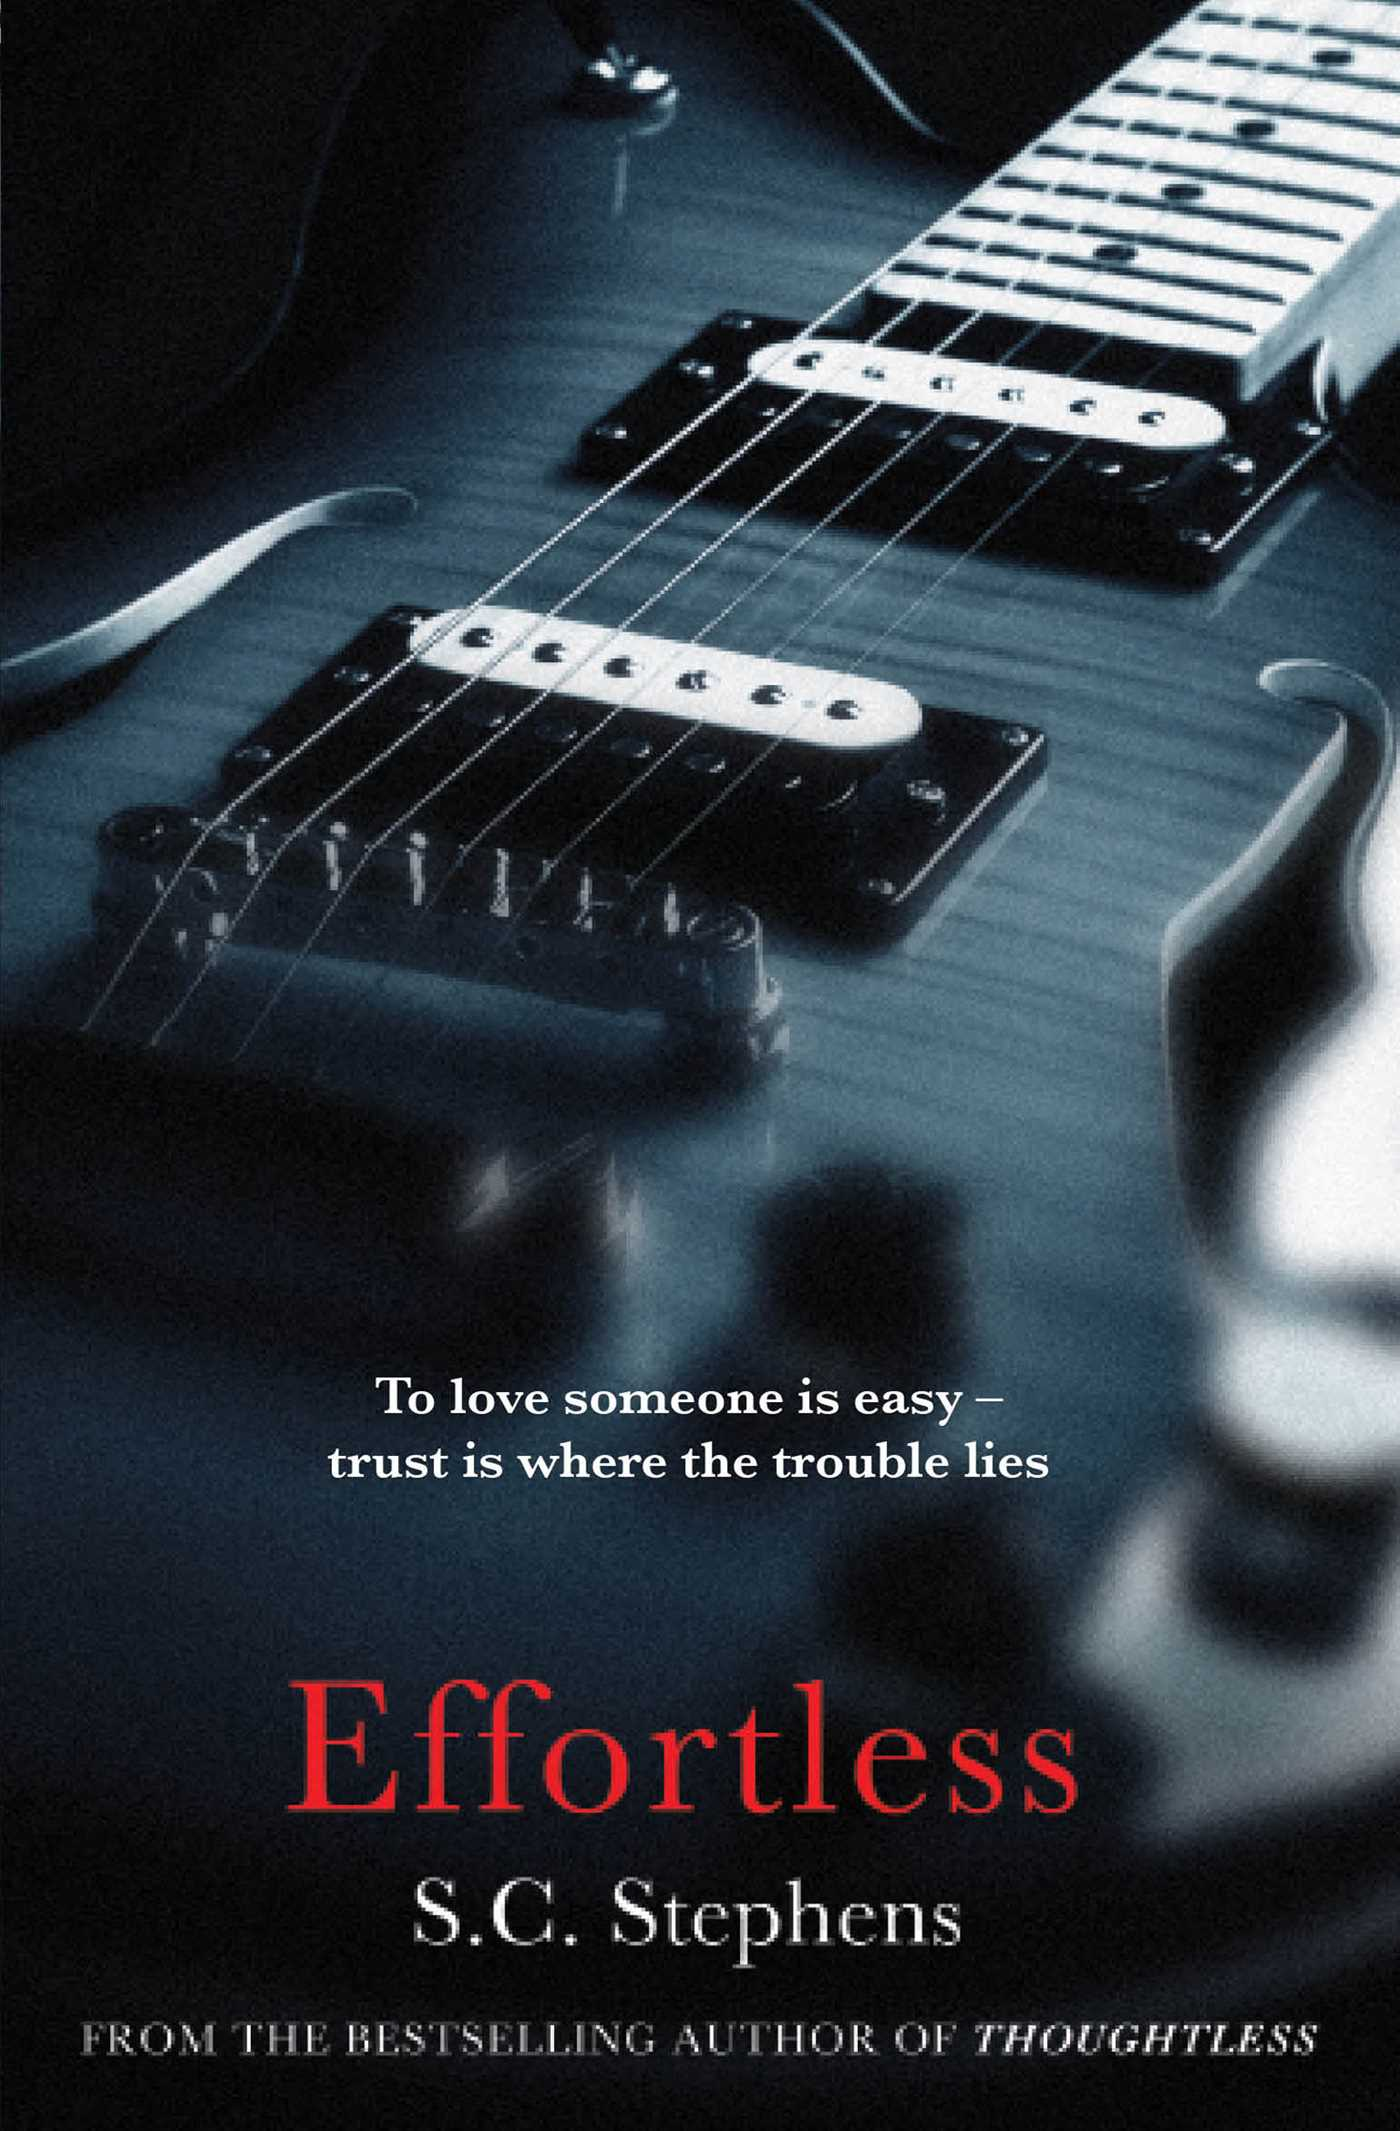 effortless by s c stephens Effortless by s c stephens starting at $145 effortless has 2 available editions to buy at alibris.